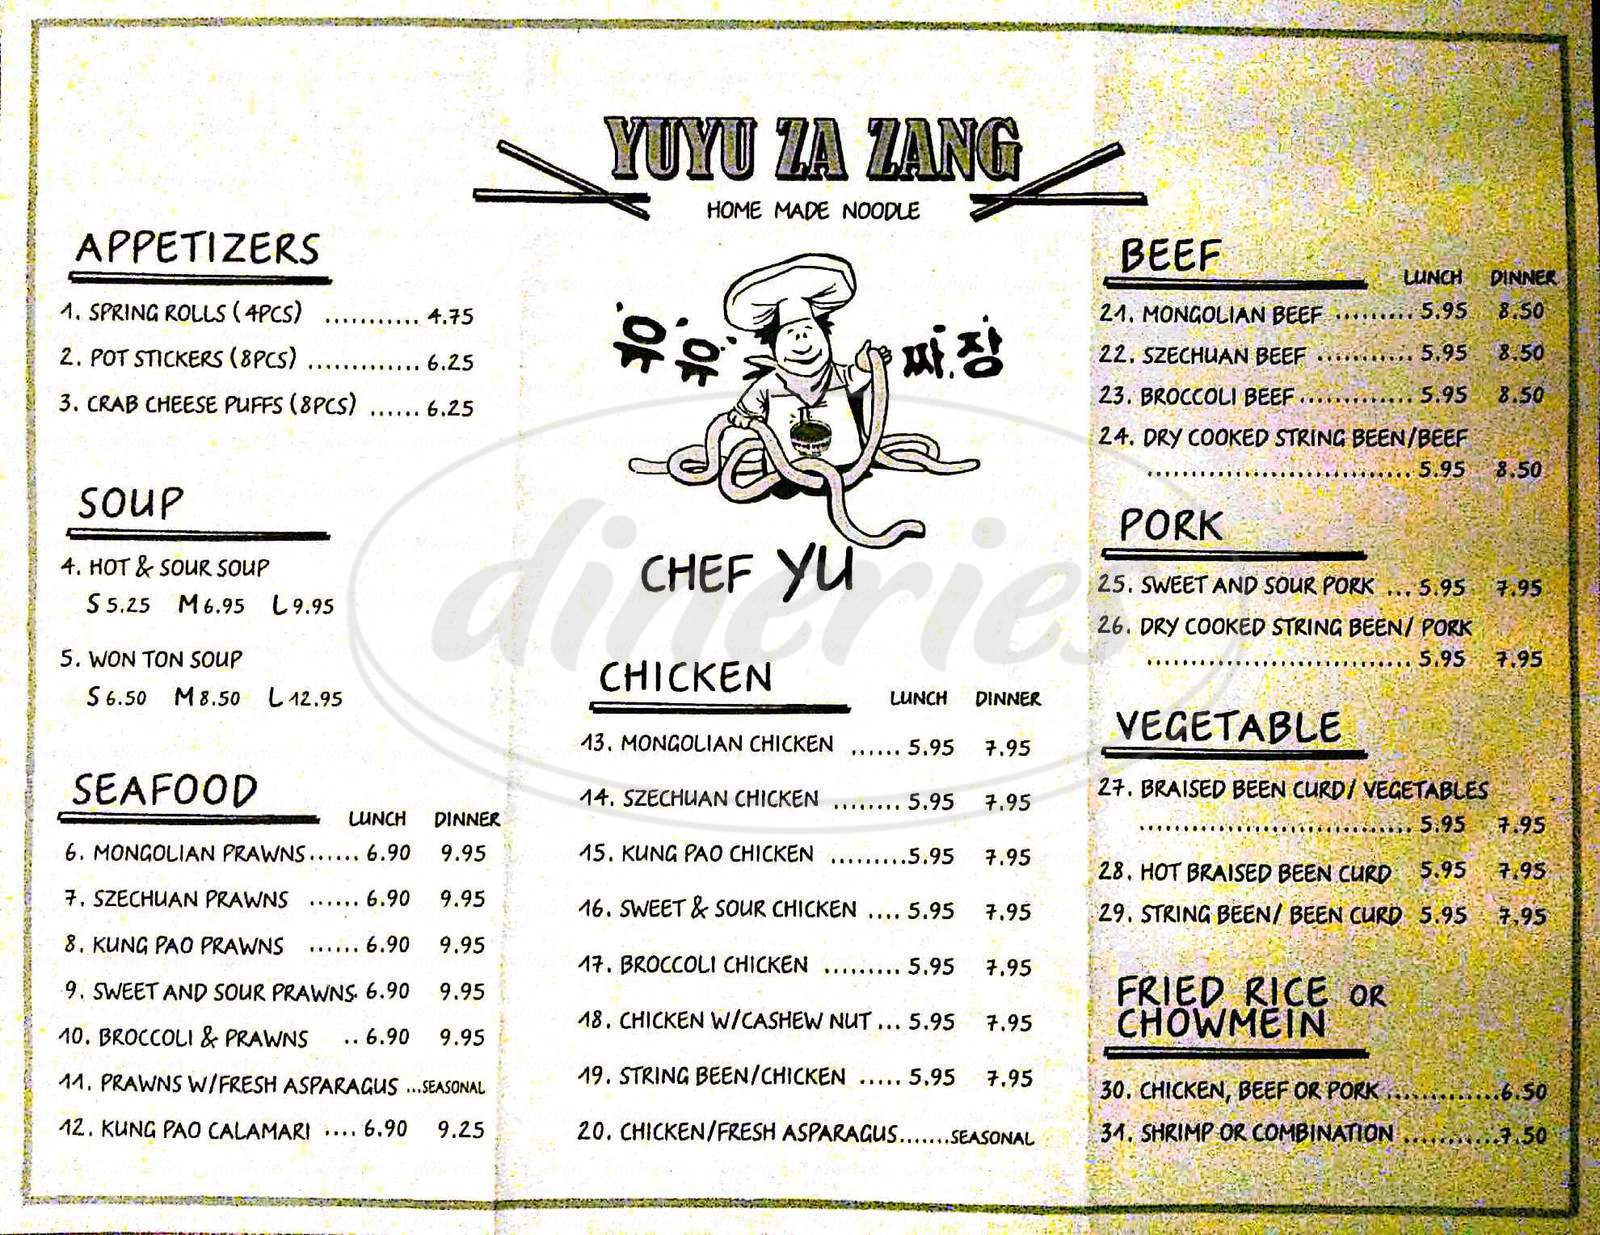 Big menu for Yuyu Za Zang, Oakland